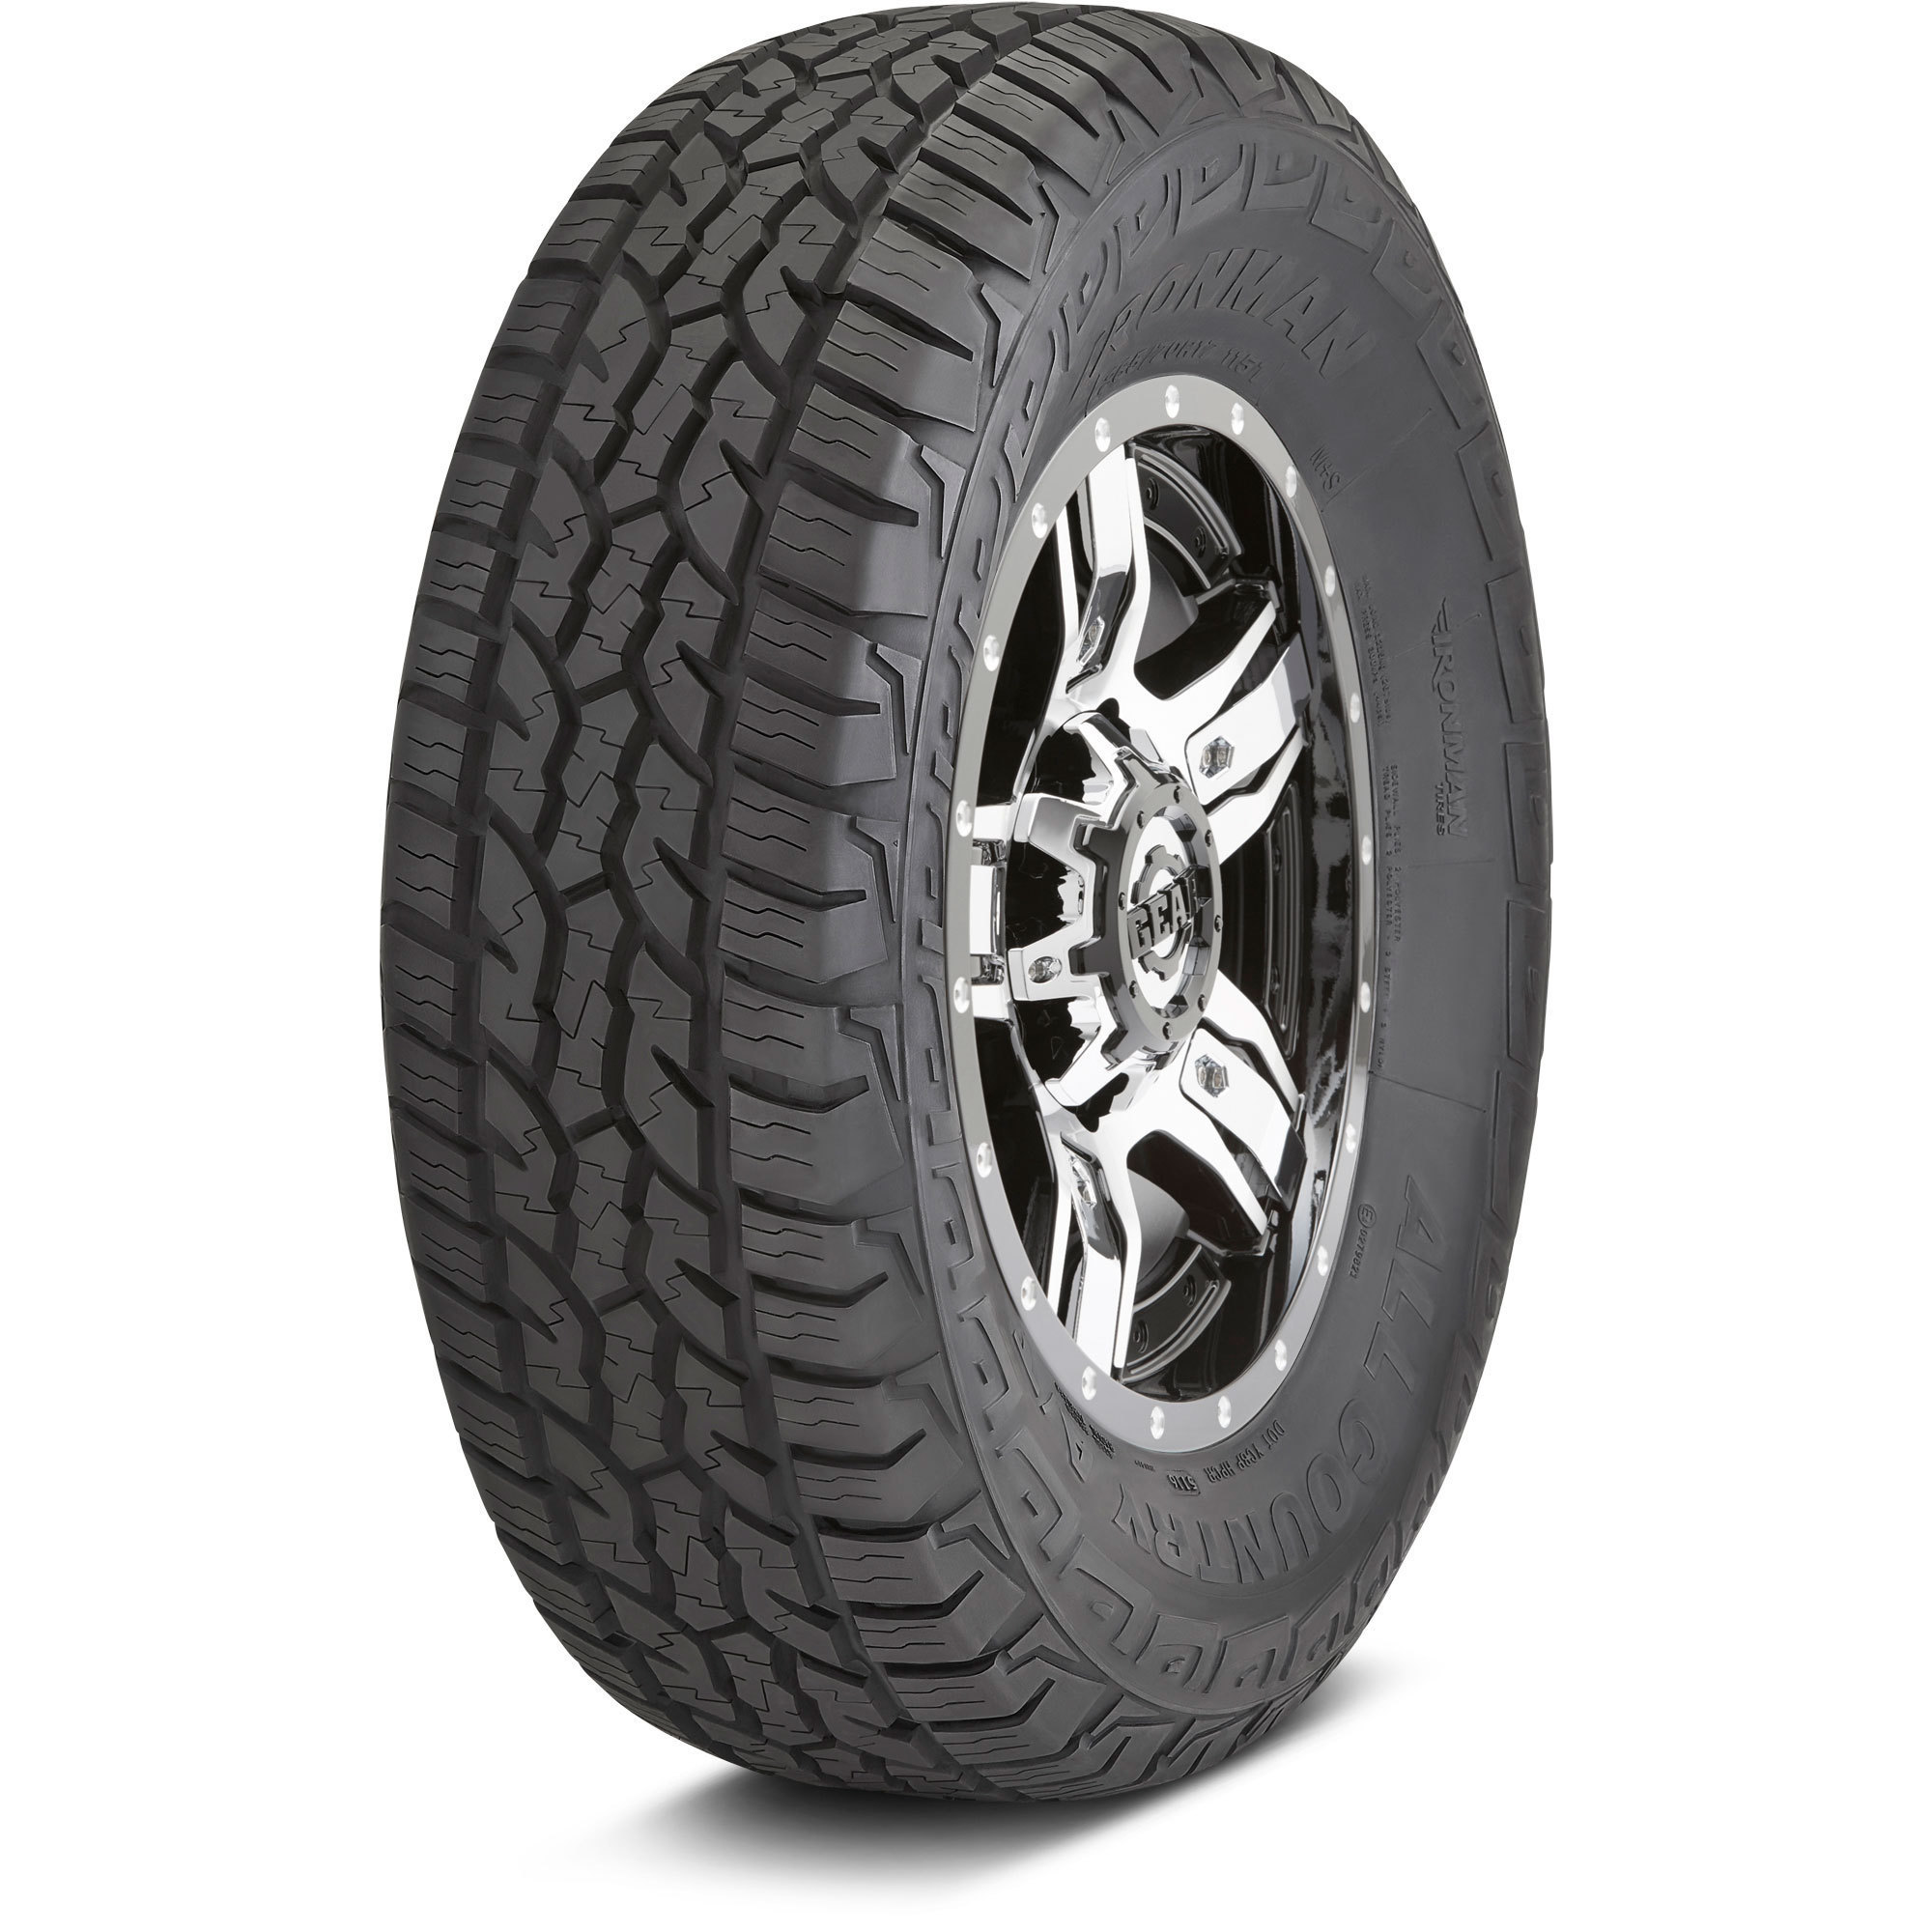 All terrain tires for sale